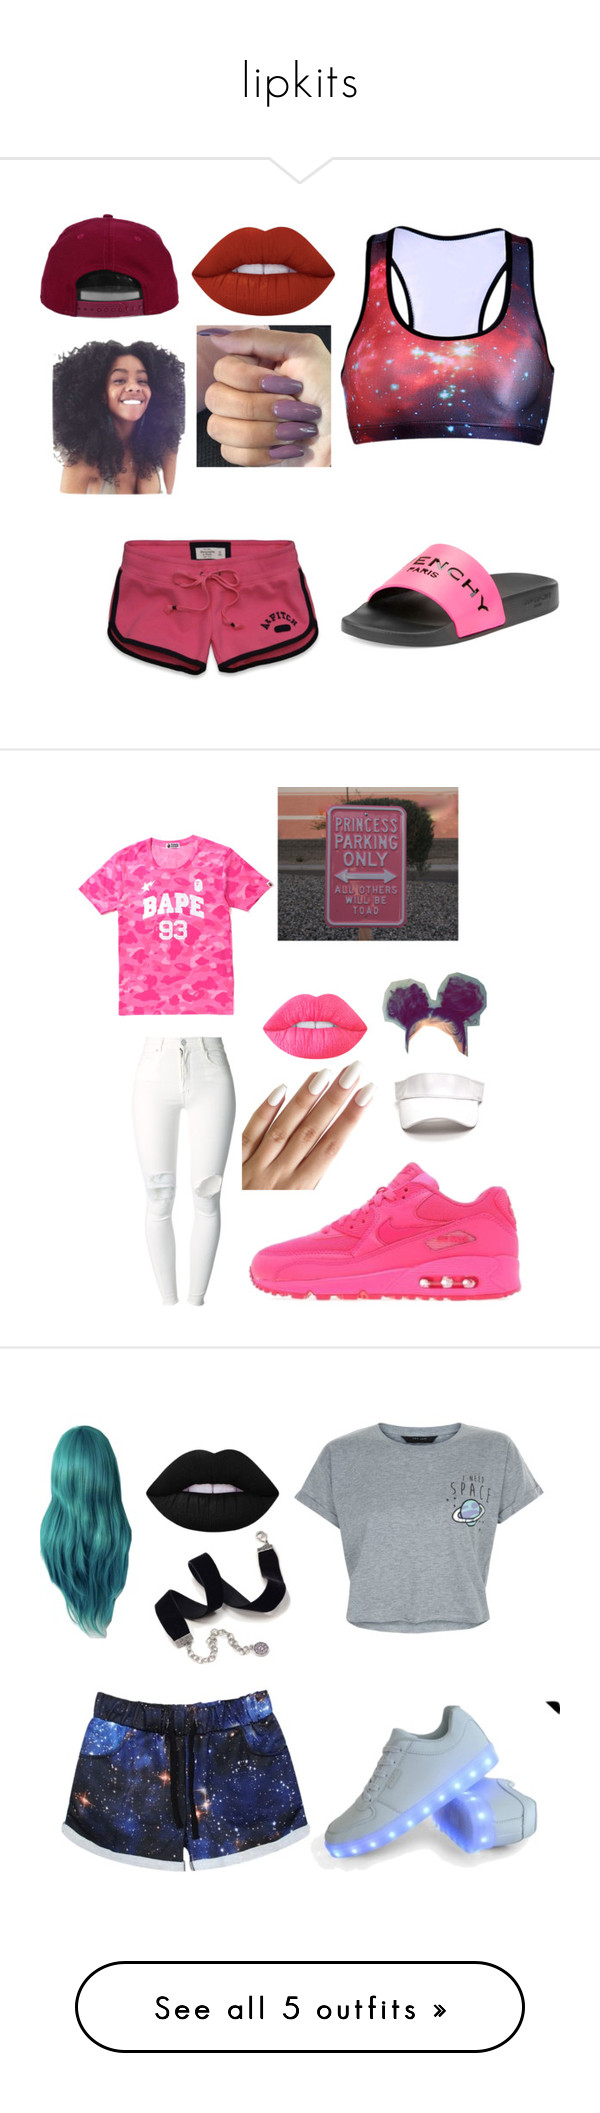 """""""lipkits"""" by jataejaherring ❤ liked on Polyvore featuring Lime Crime, Abercrombie & Fitch, H&M, Givenchy, NIKE, (+) PEOPLE, New Look, Sweet Romance, Martucci and Breckelle's"""